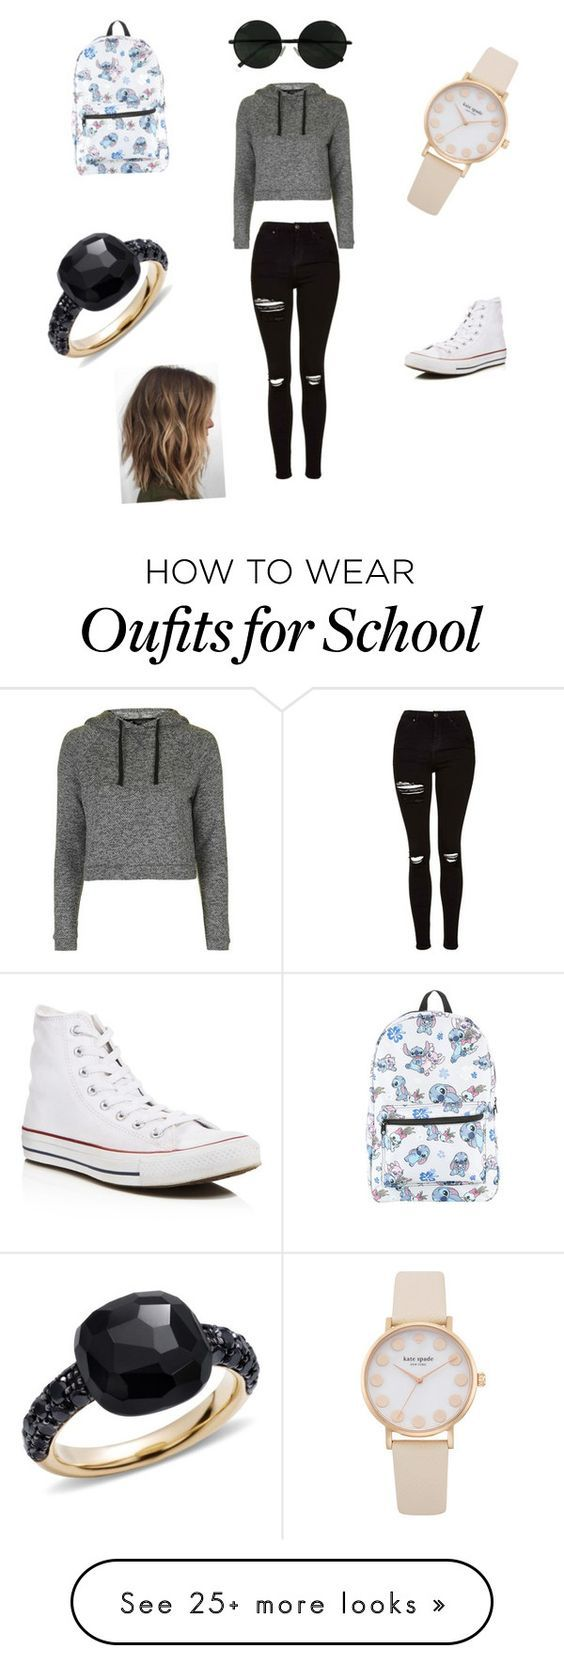 First day of school kind of outfit by nadia-duran14 on Polyvore featuring Topshop, Converse, Disney and Pomellato: